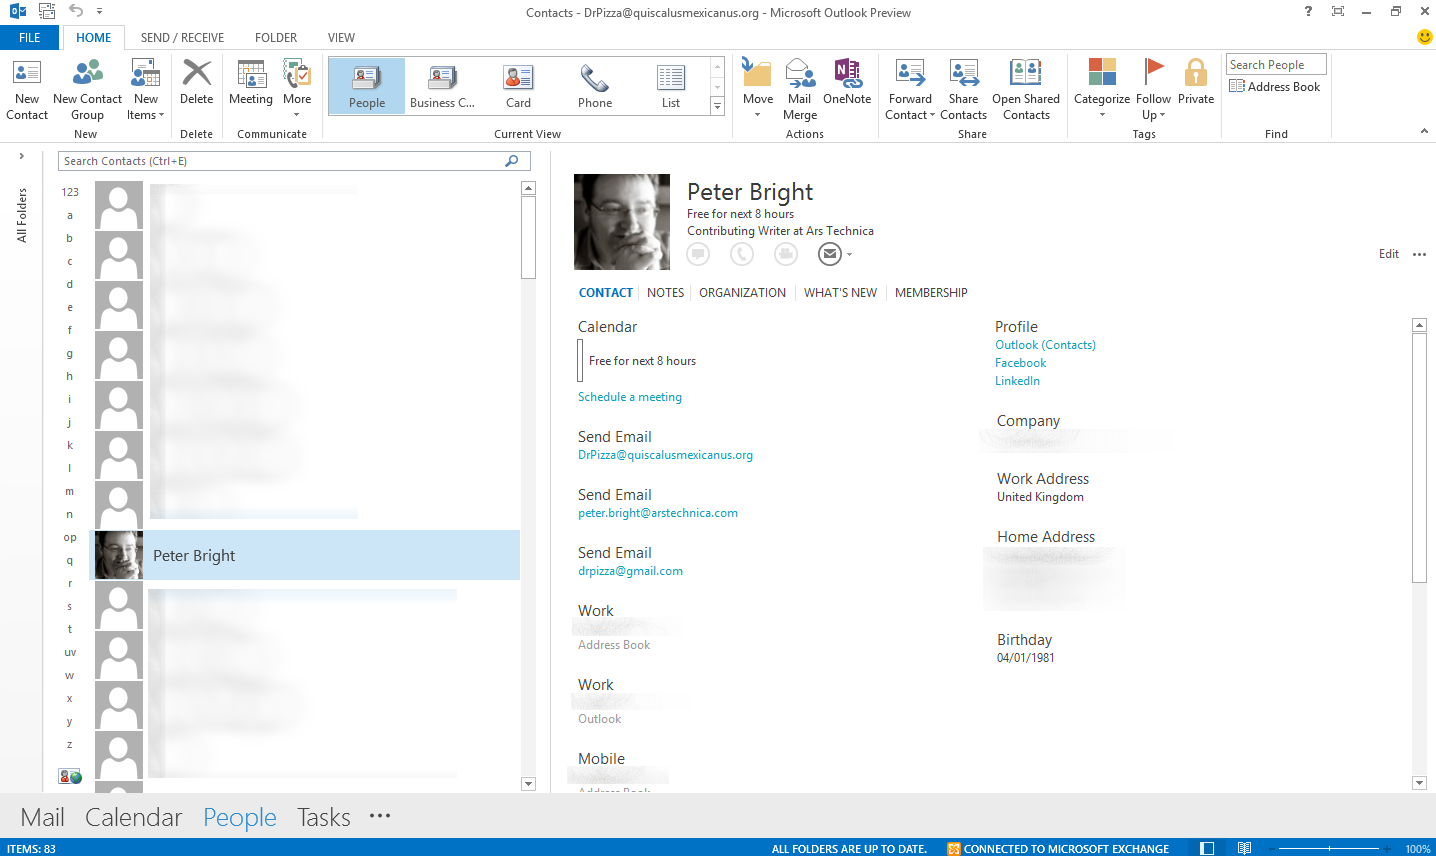 Functionality Directly In Outlook Just Like It Is An Outlook Folder